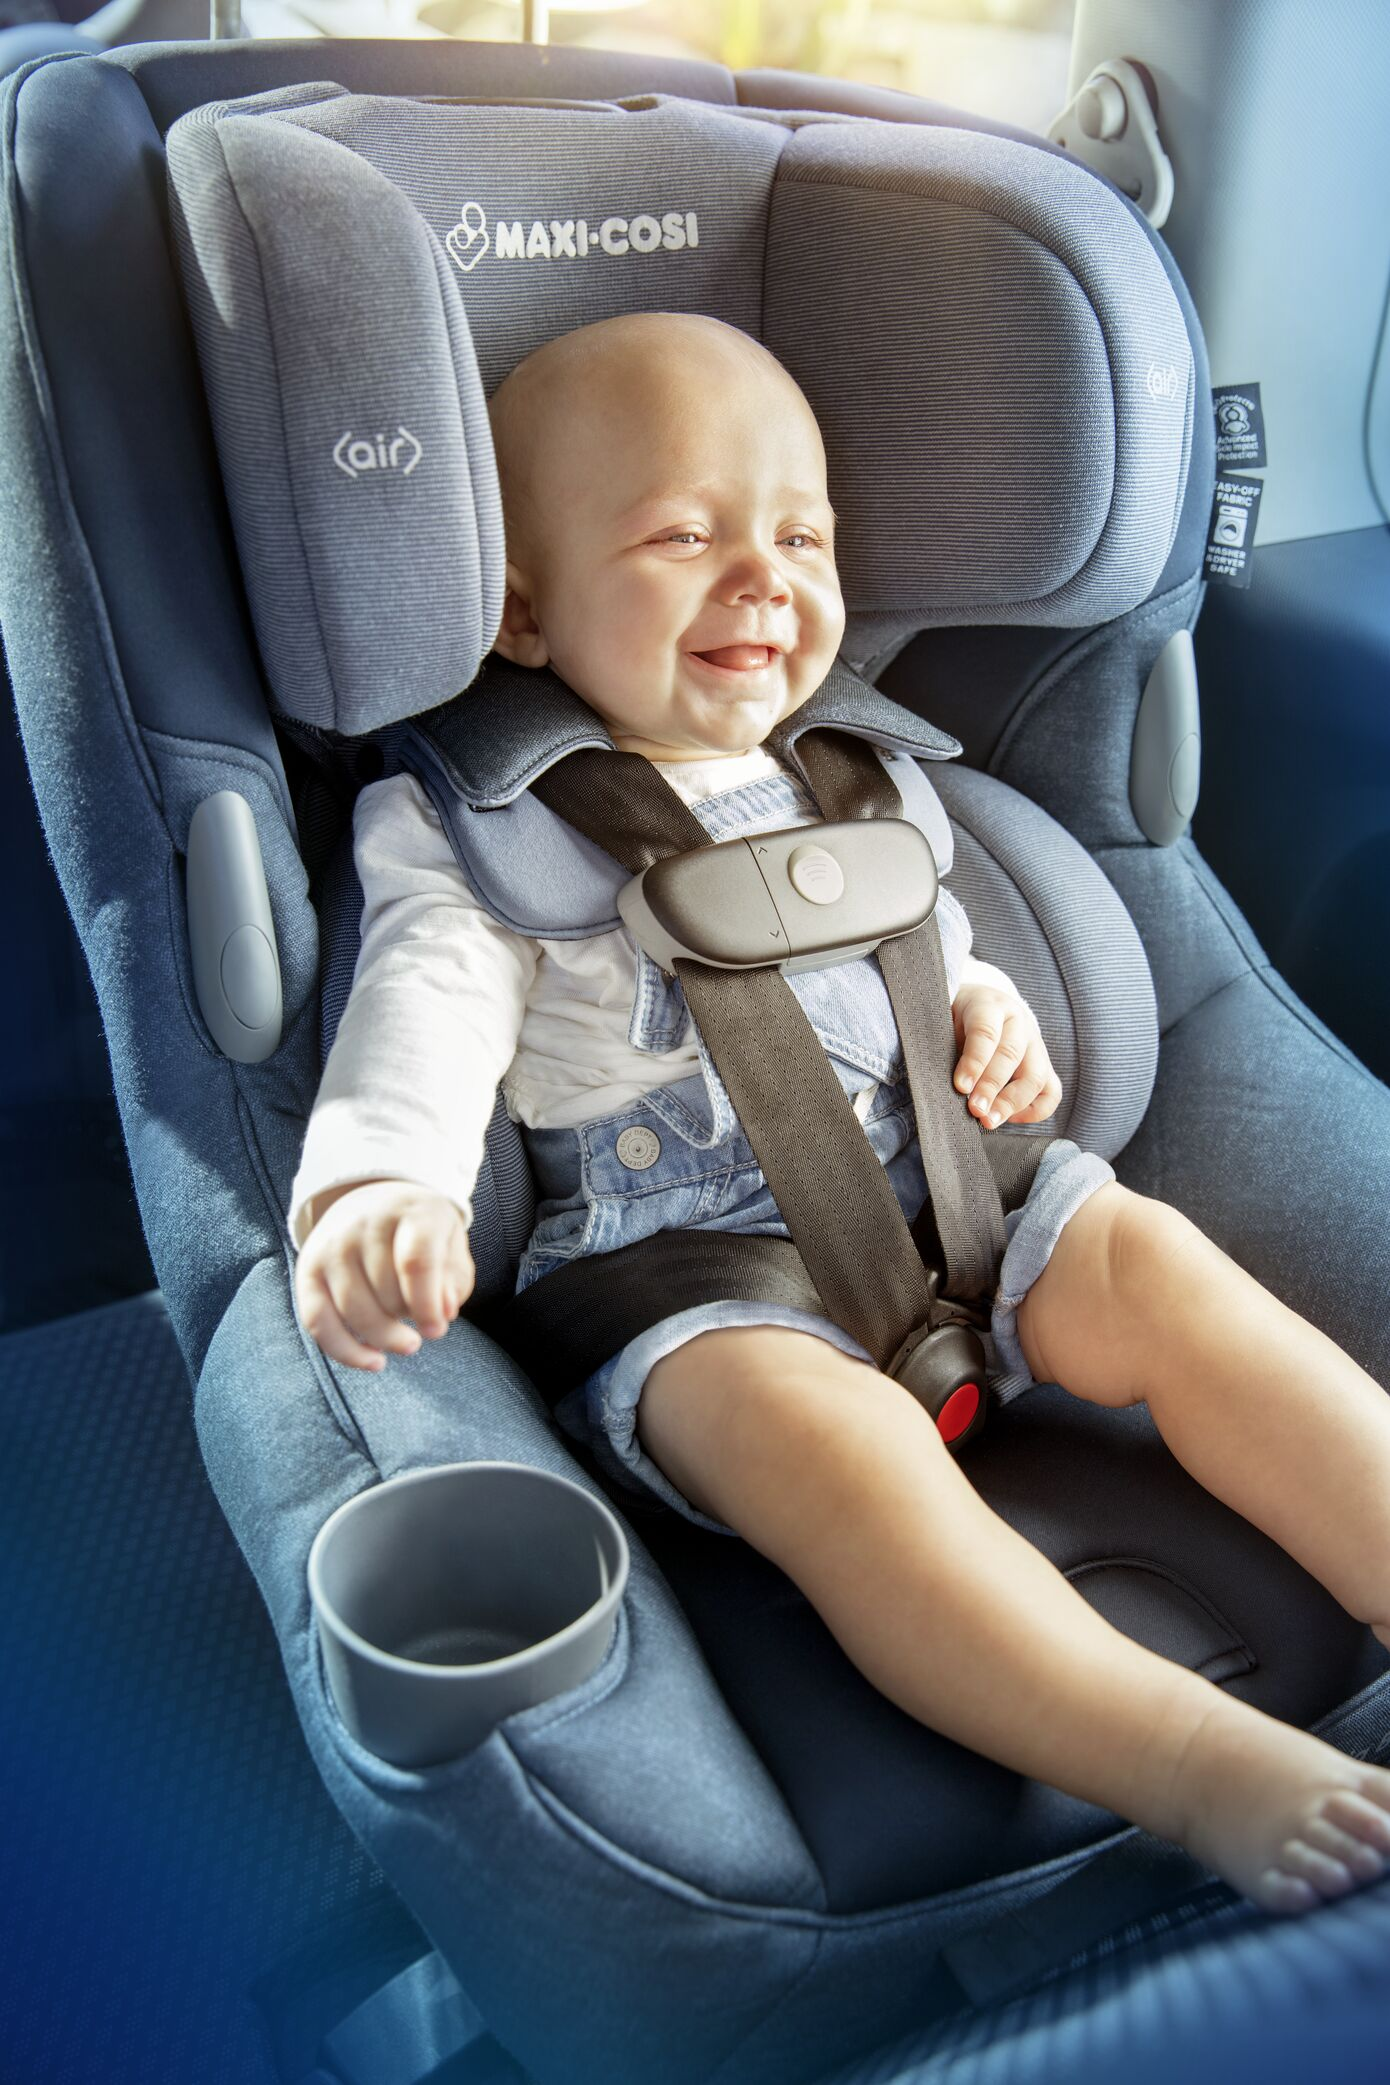 Isofix Sitzerhöhung Lösen Maxi Cosi Car Seats Did You Know Maxi Cosi